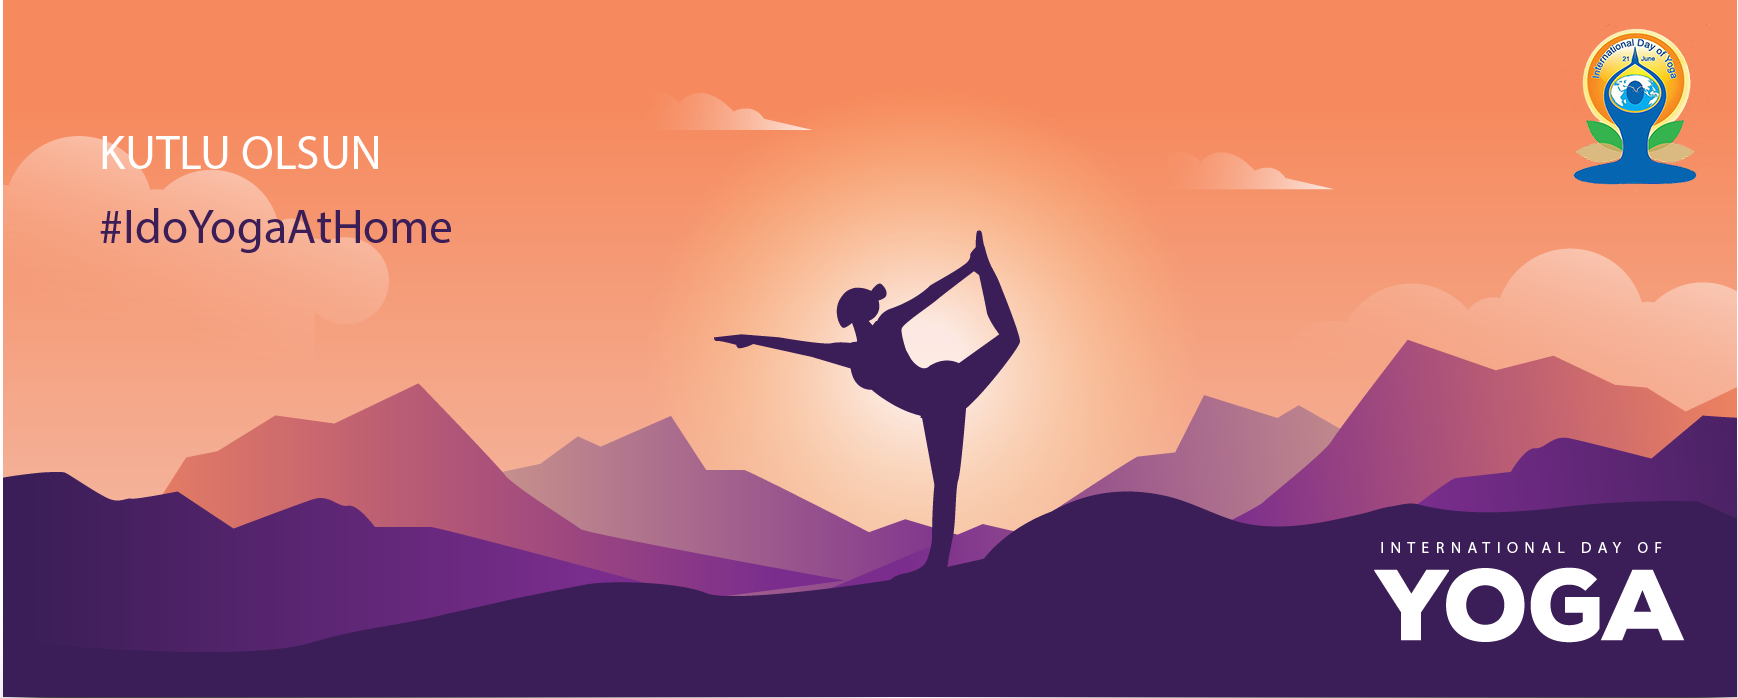 http://www.yogadergisi.com/images/slaytlar/yogaday.png